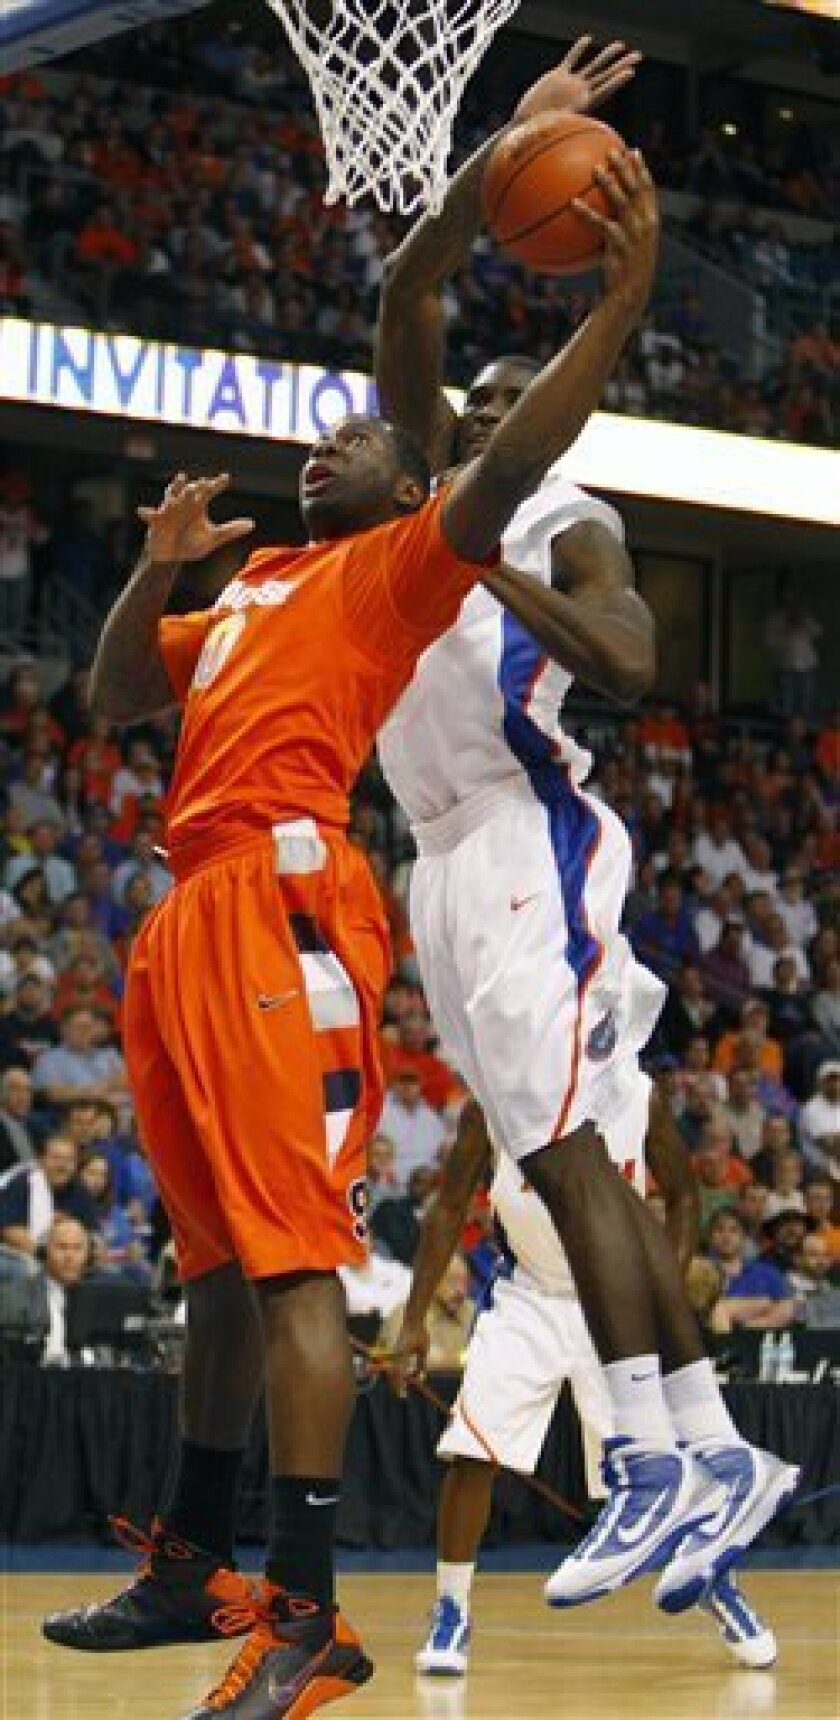 Syracuse forward Rick Jackson (0) goes to the basket in front of Florida's Vernon Macklin (32) during the first half of an NCAA college basketball game Thursday, Dec. 10, 2009, in Tampa, Fla. (AP Photo/Chris O'Meara)